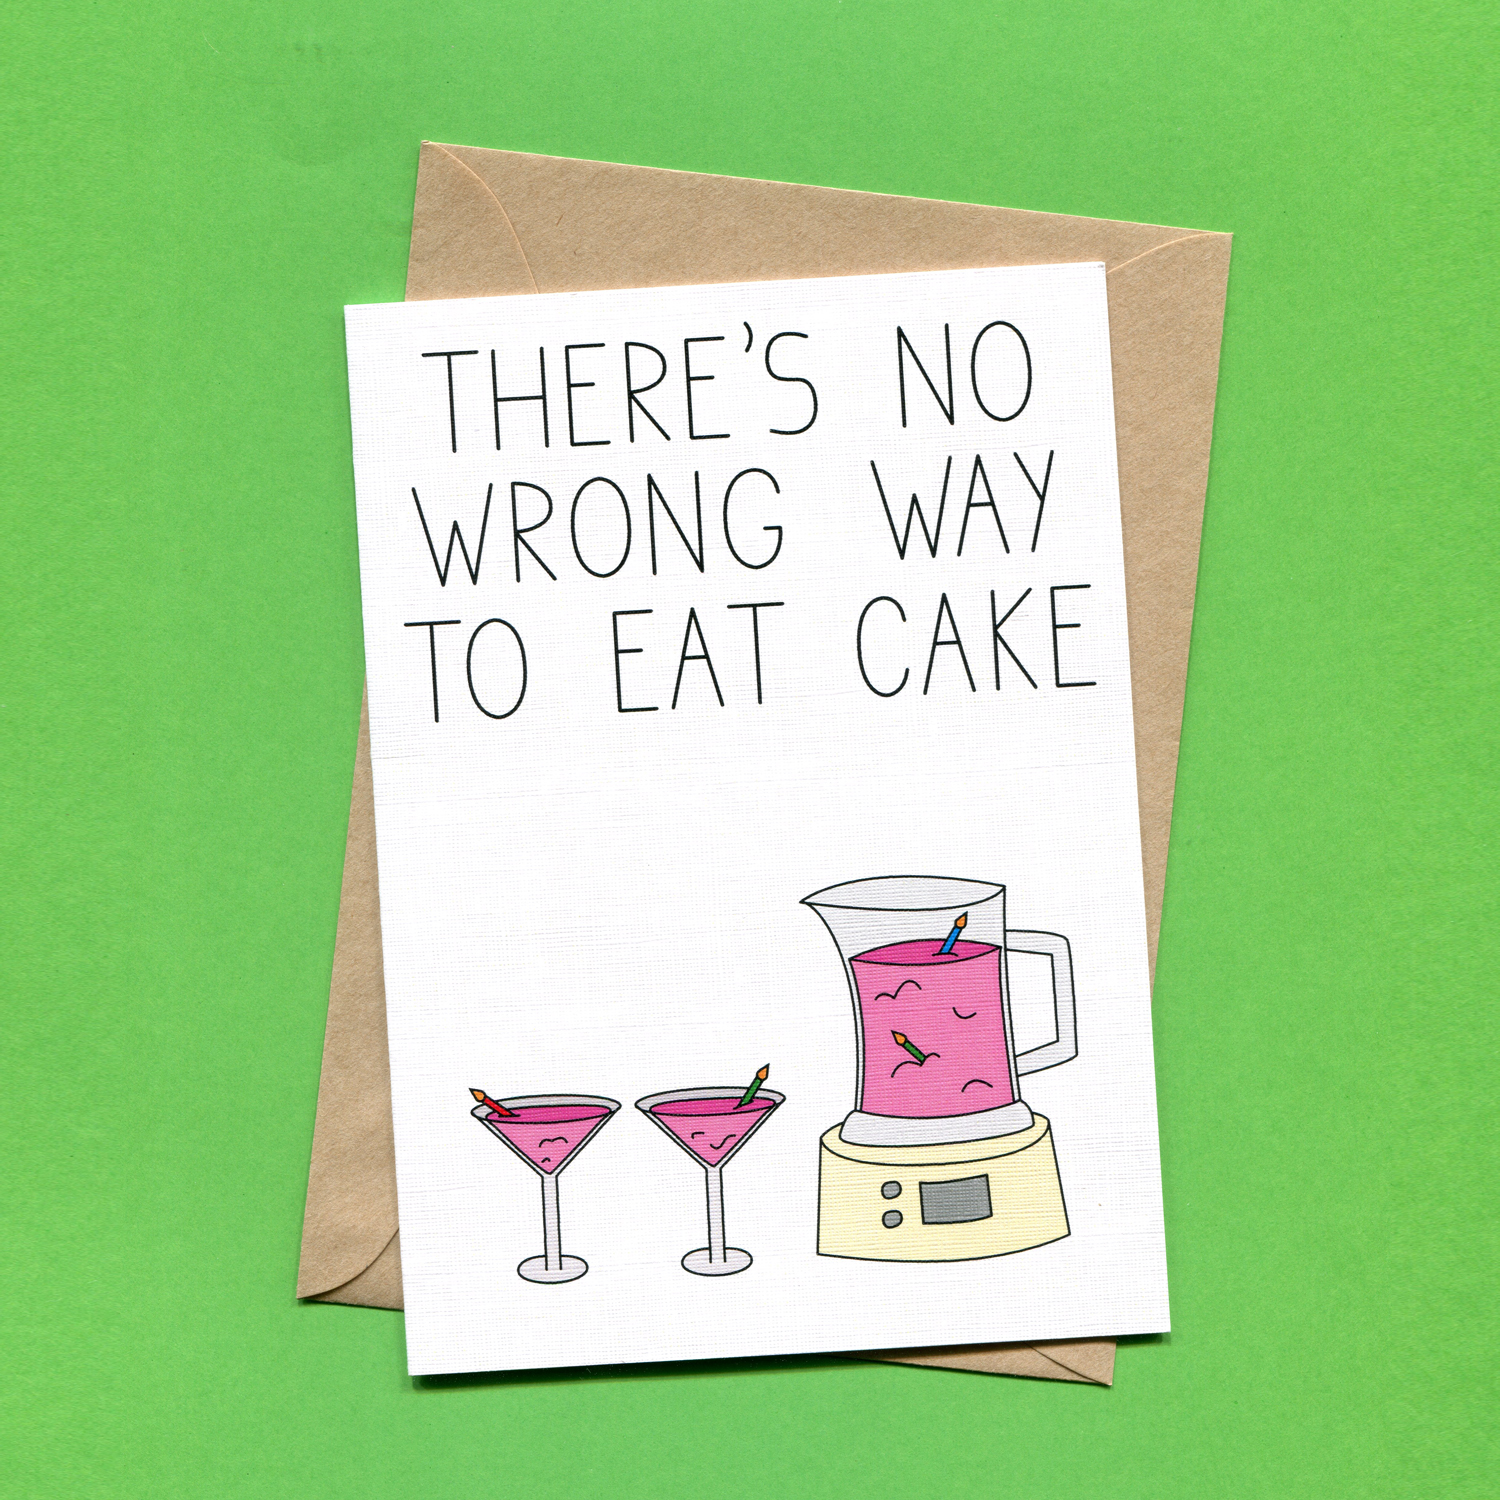 Catalogue_Things by Bean There's No Wrong Way to Eat Cake Greeting Card.jpg